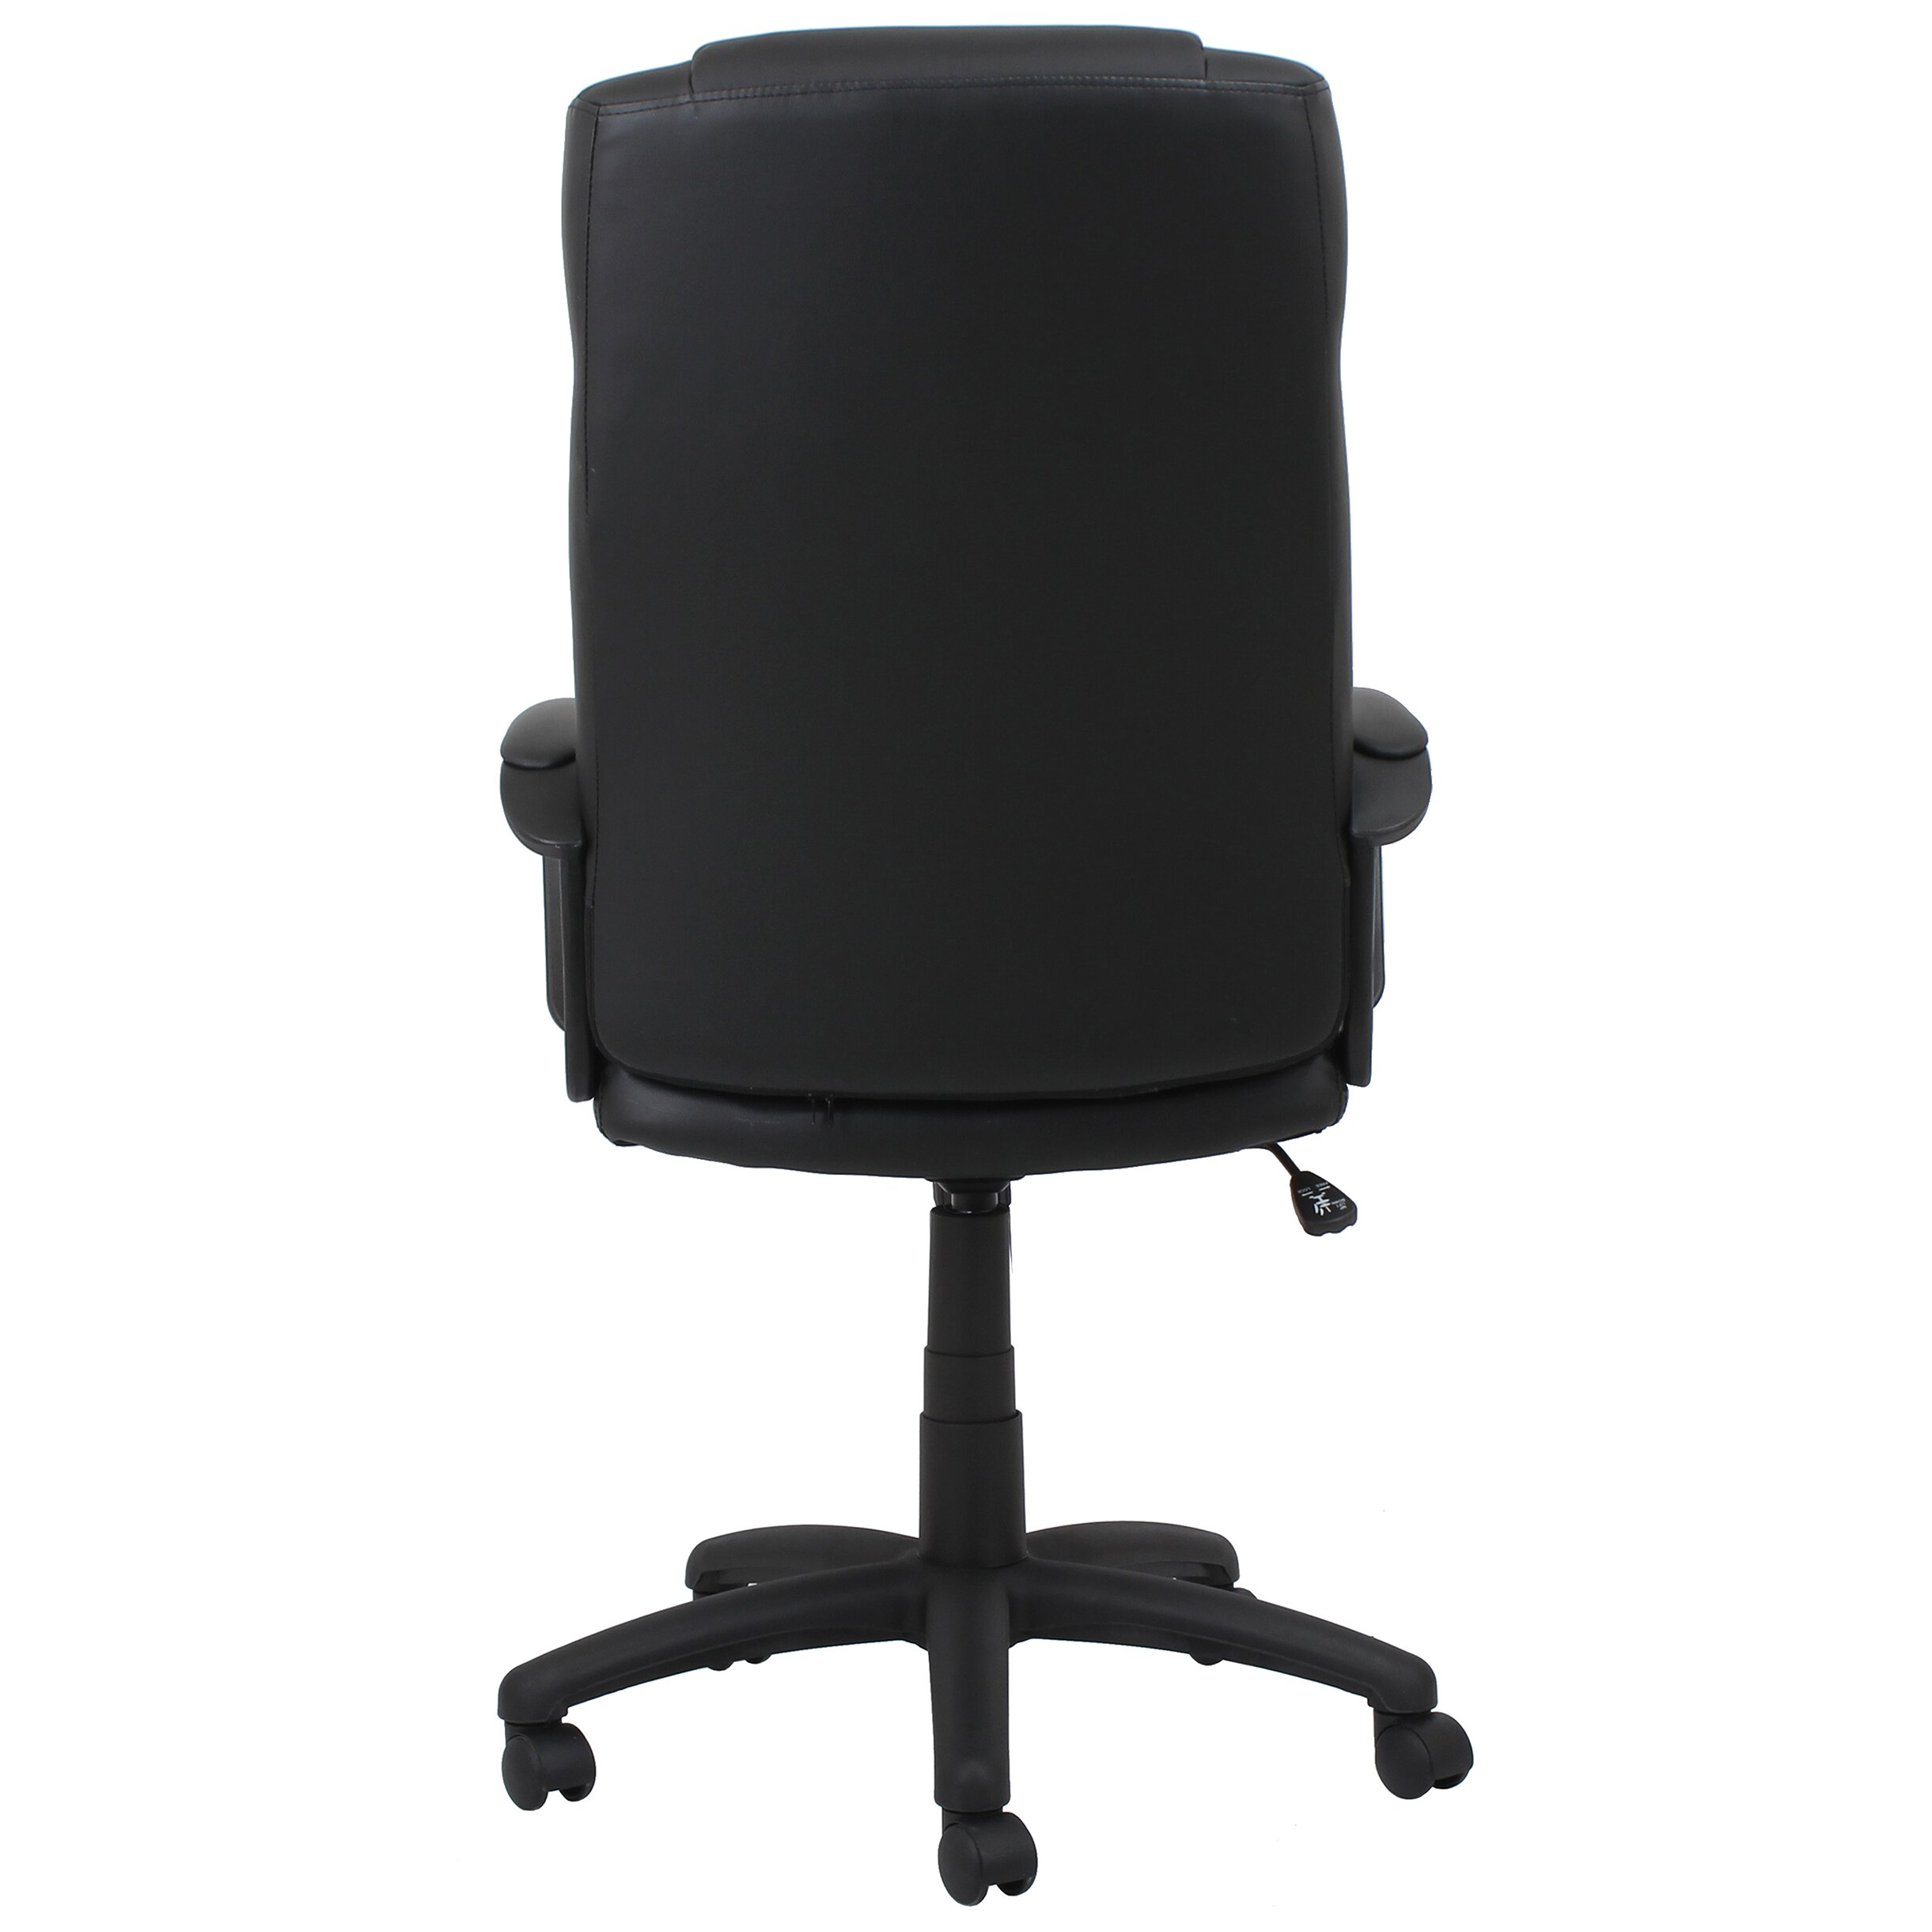 Ofm essentials high back leather desk chair with arms